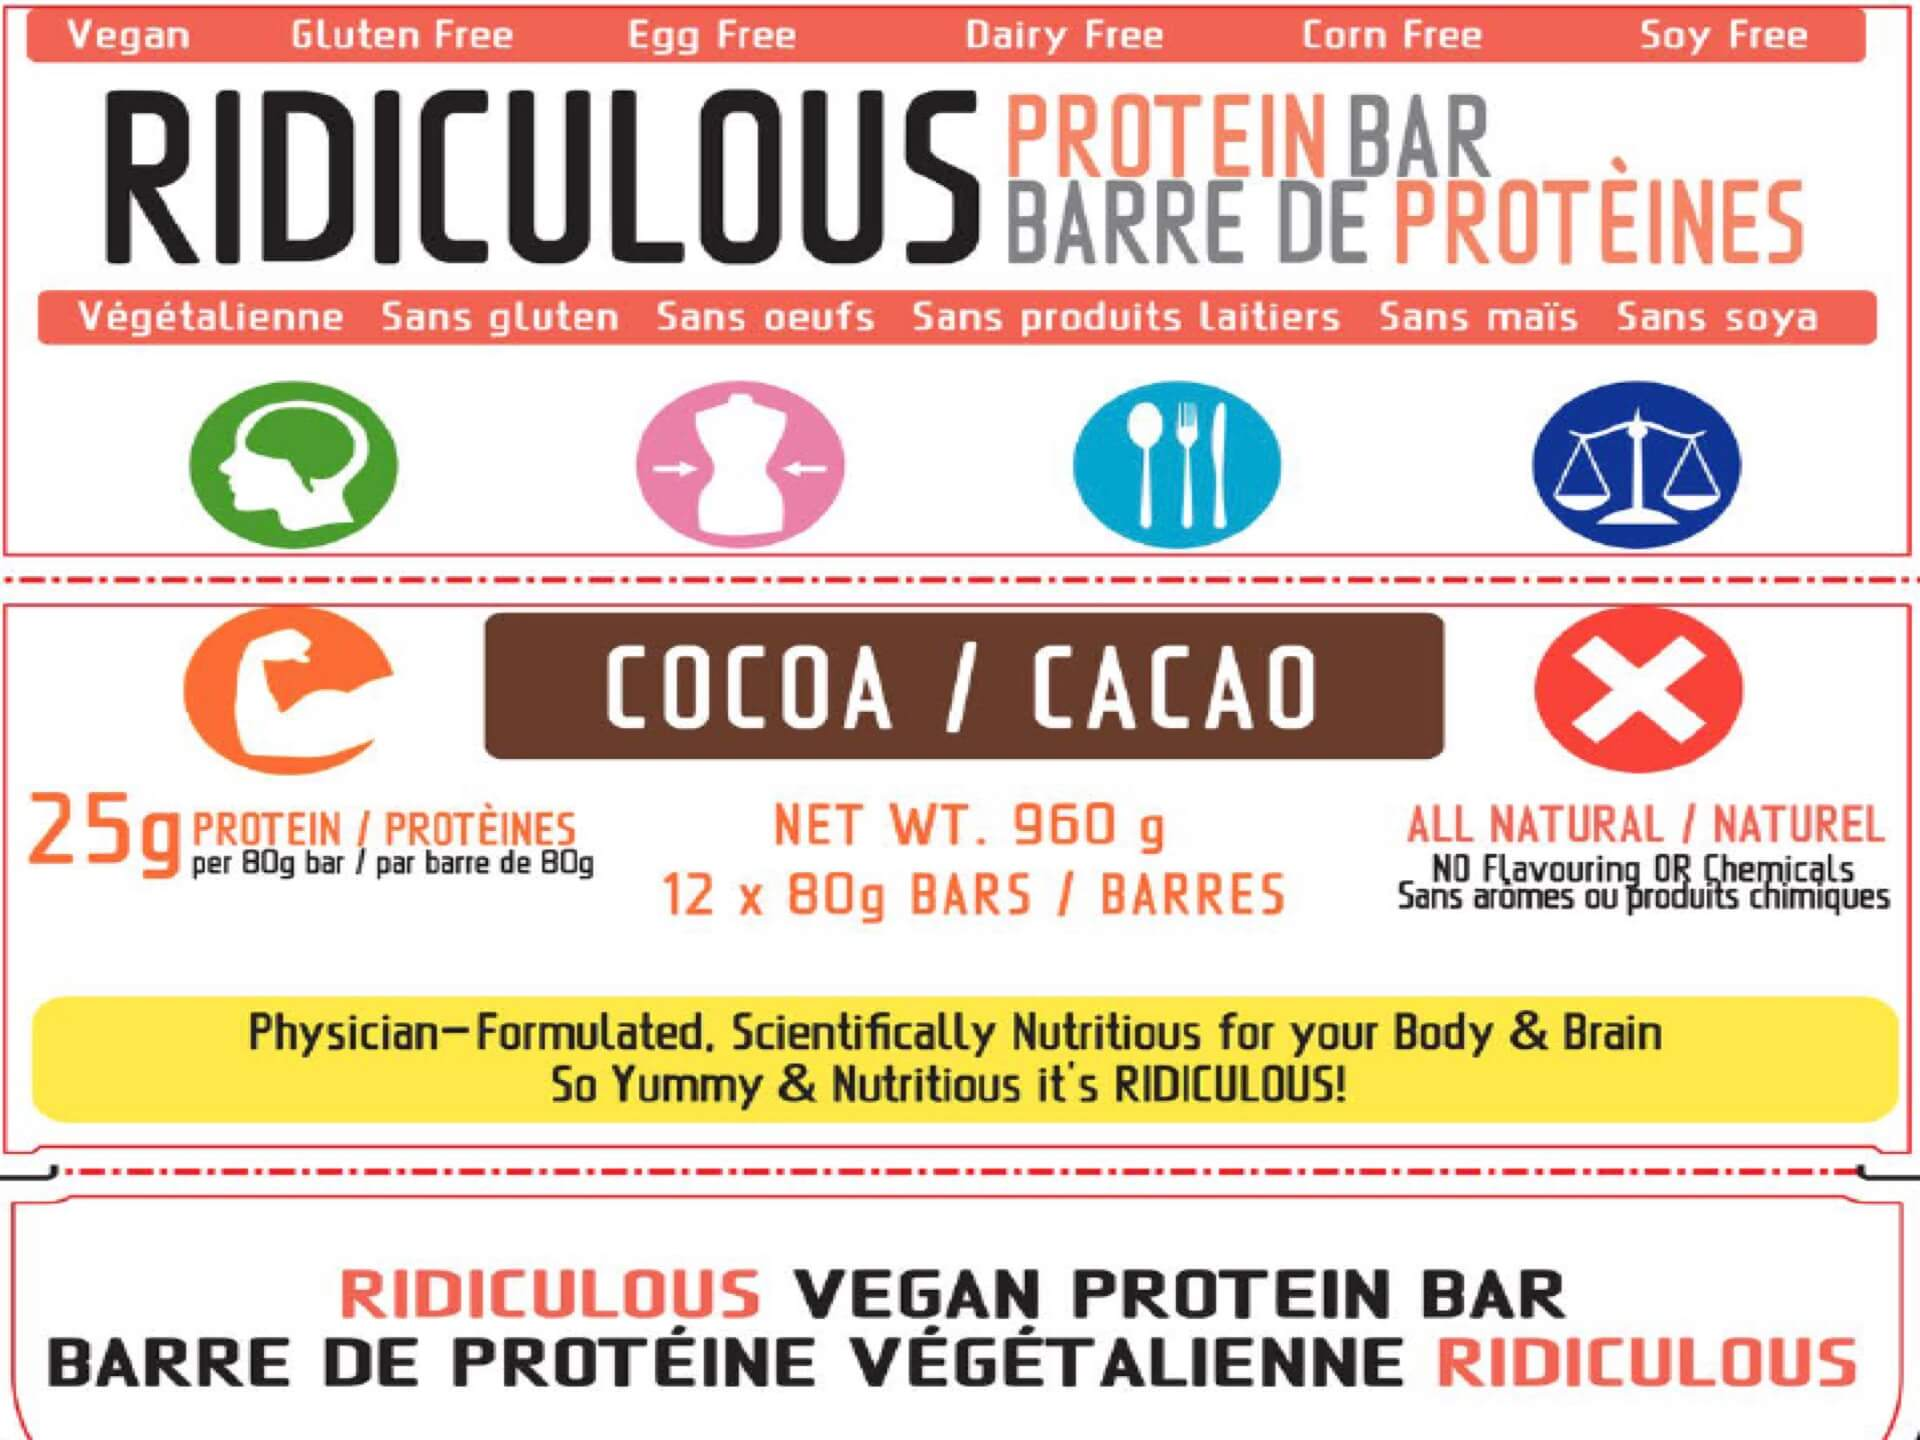 Ridiculous Protein Bar 80g each (BOX of 12) HIGH Protein LOW Carb Vegan Organic Superfood  * Gluten-Free  * Wheat-Free  * Soy-Free  * Egg-Free  * Dairy-Free  * Corn-Free  * Yeast-Free